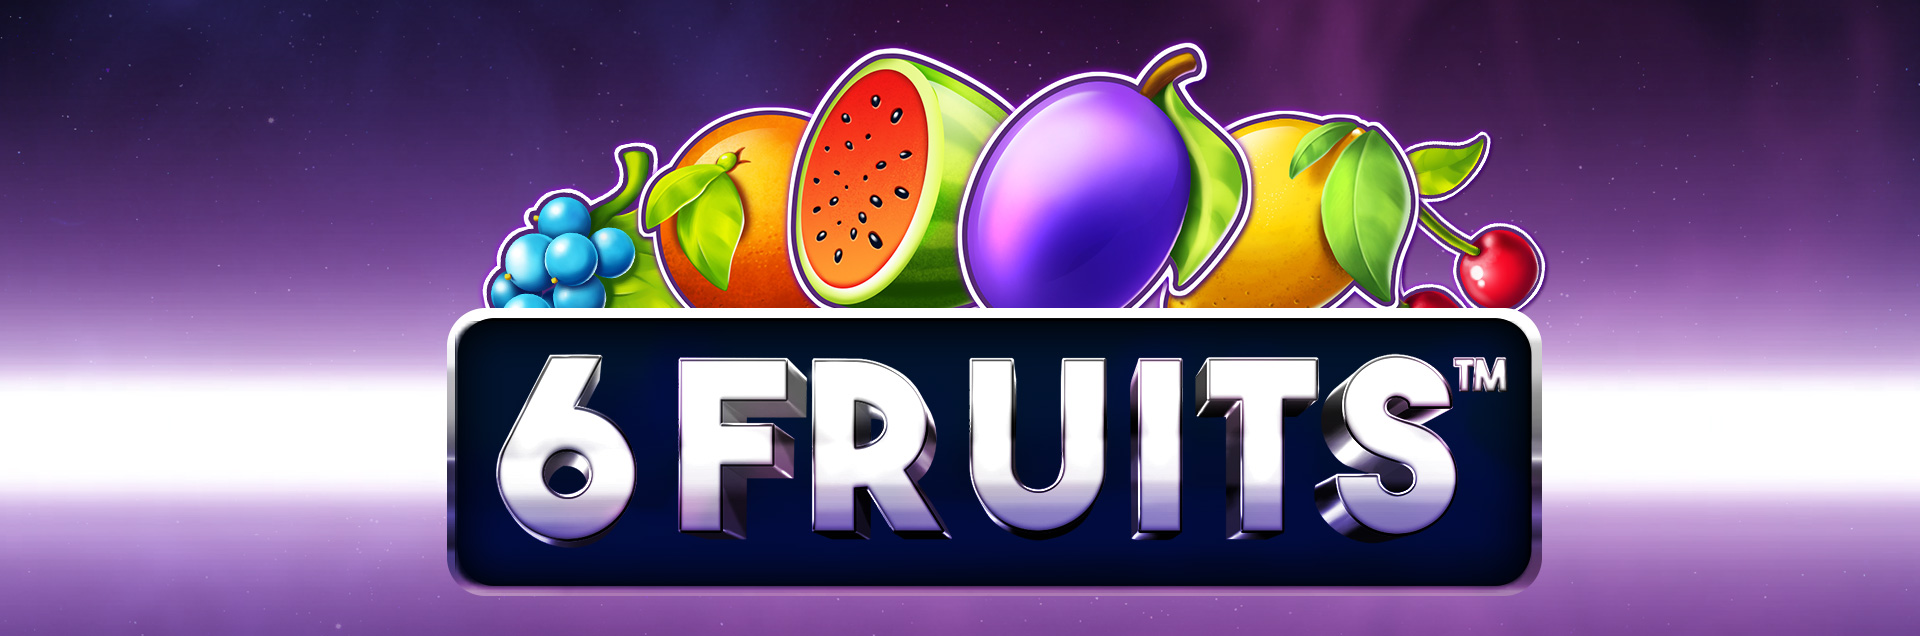 SixFruits header games